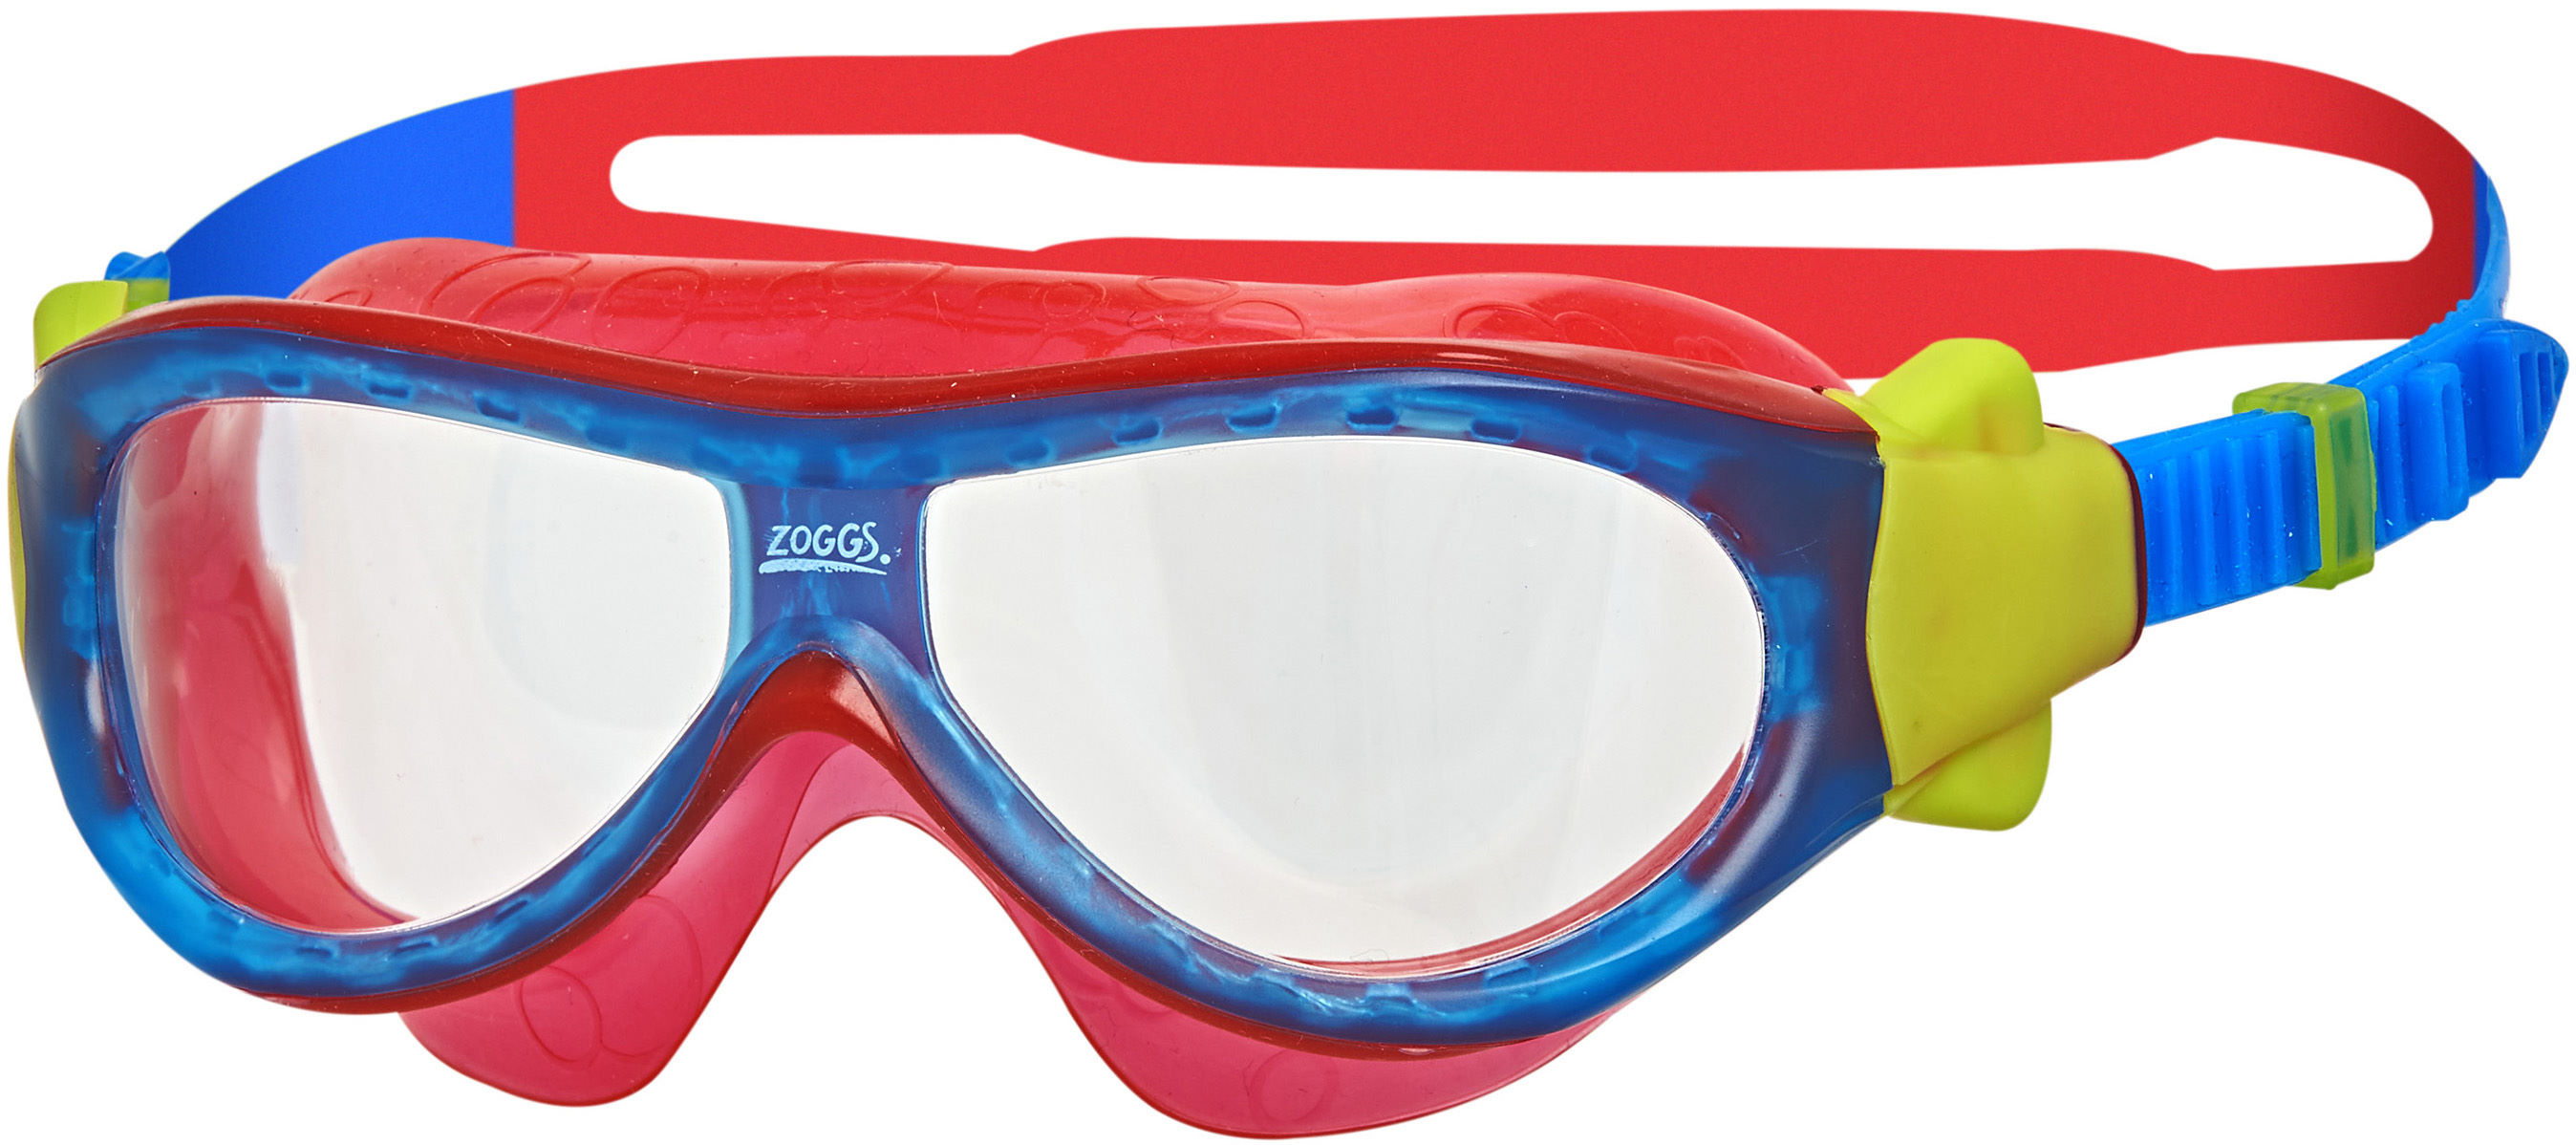 Phantom Kids Mask blue//red Zoggs Swimming Goggles